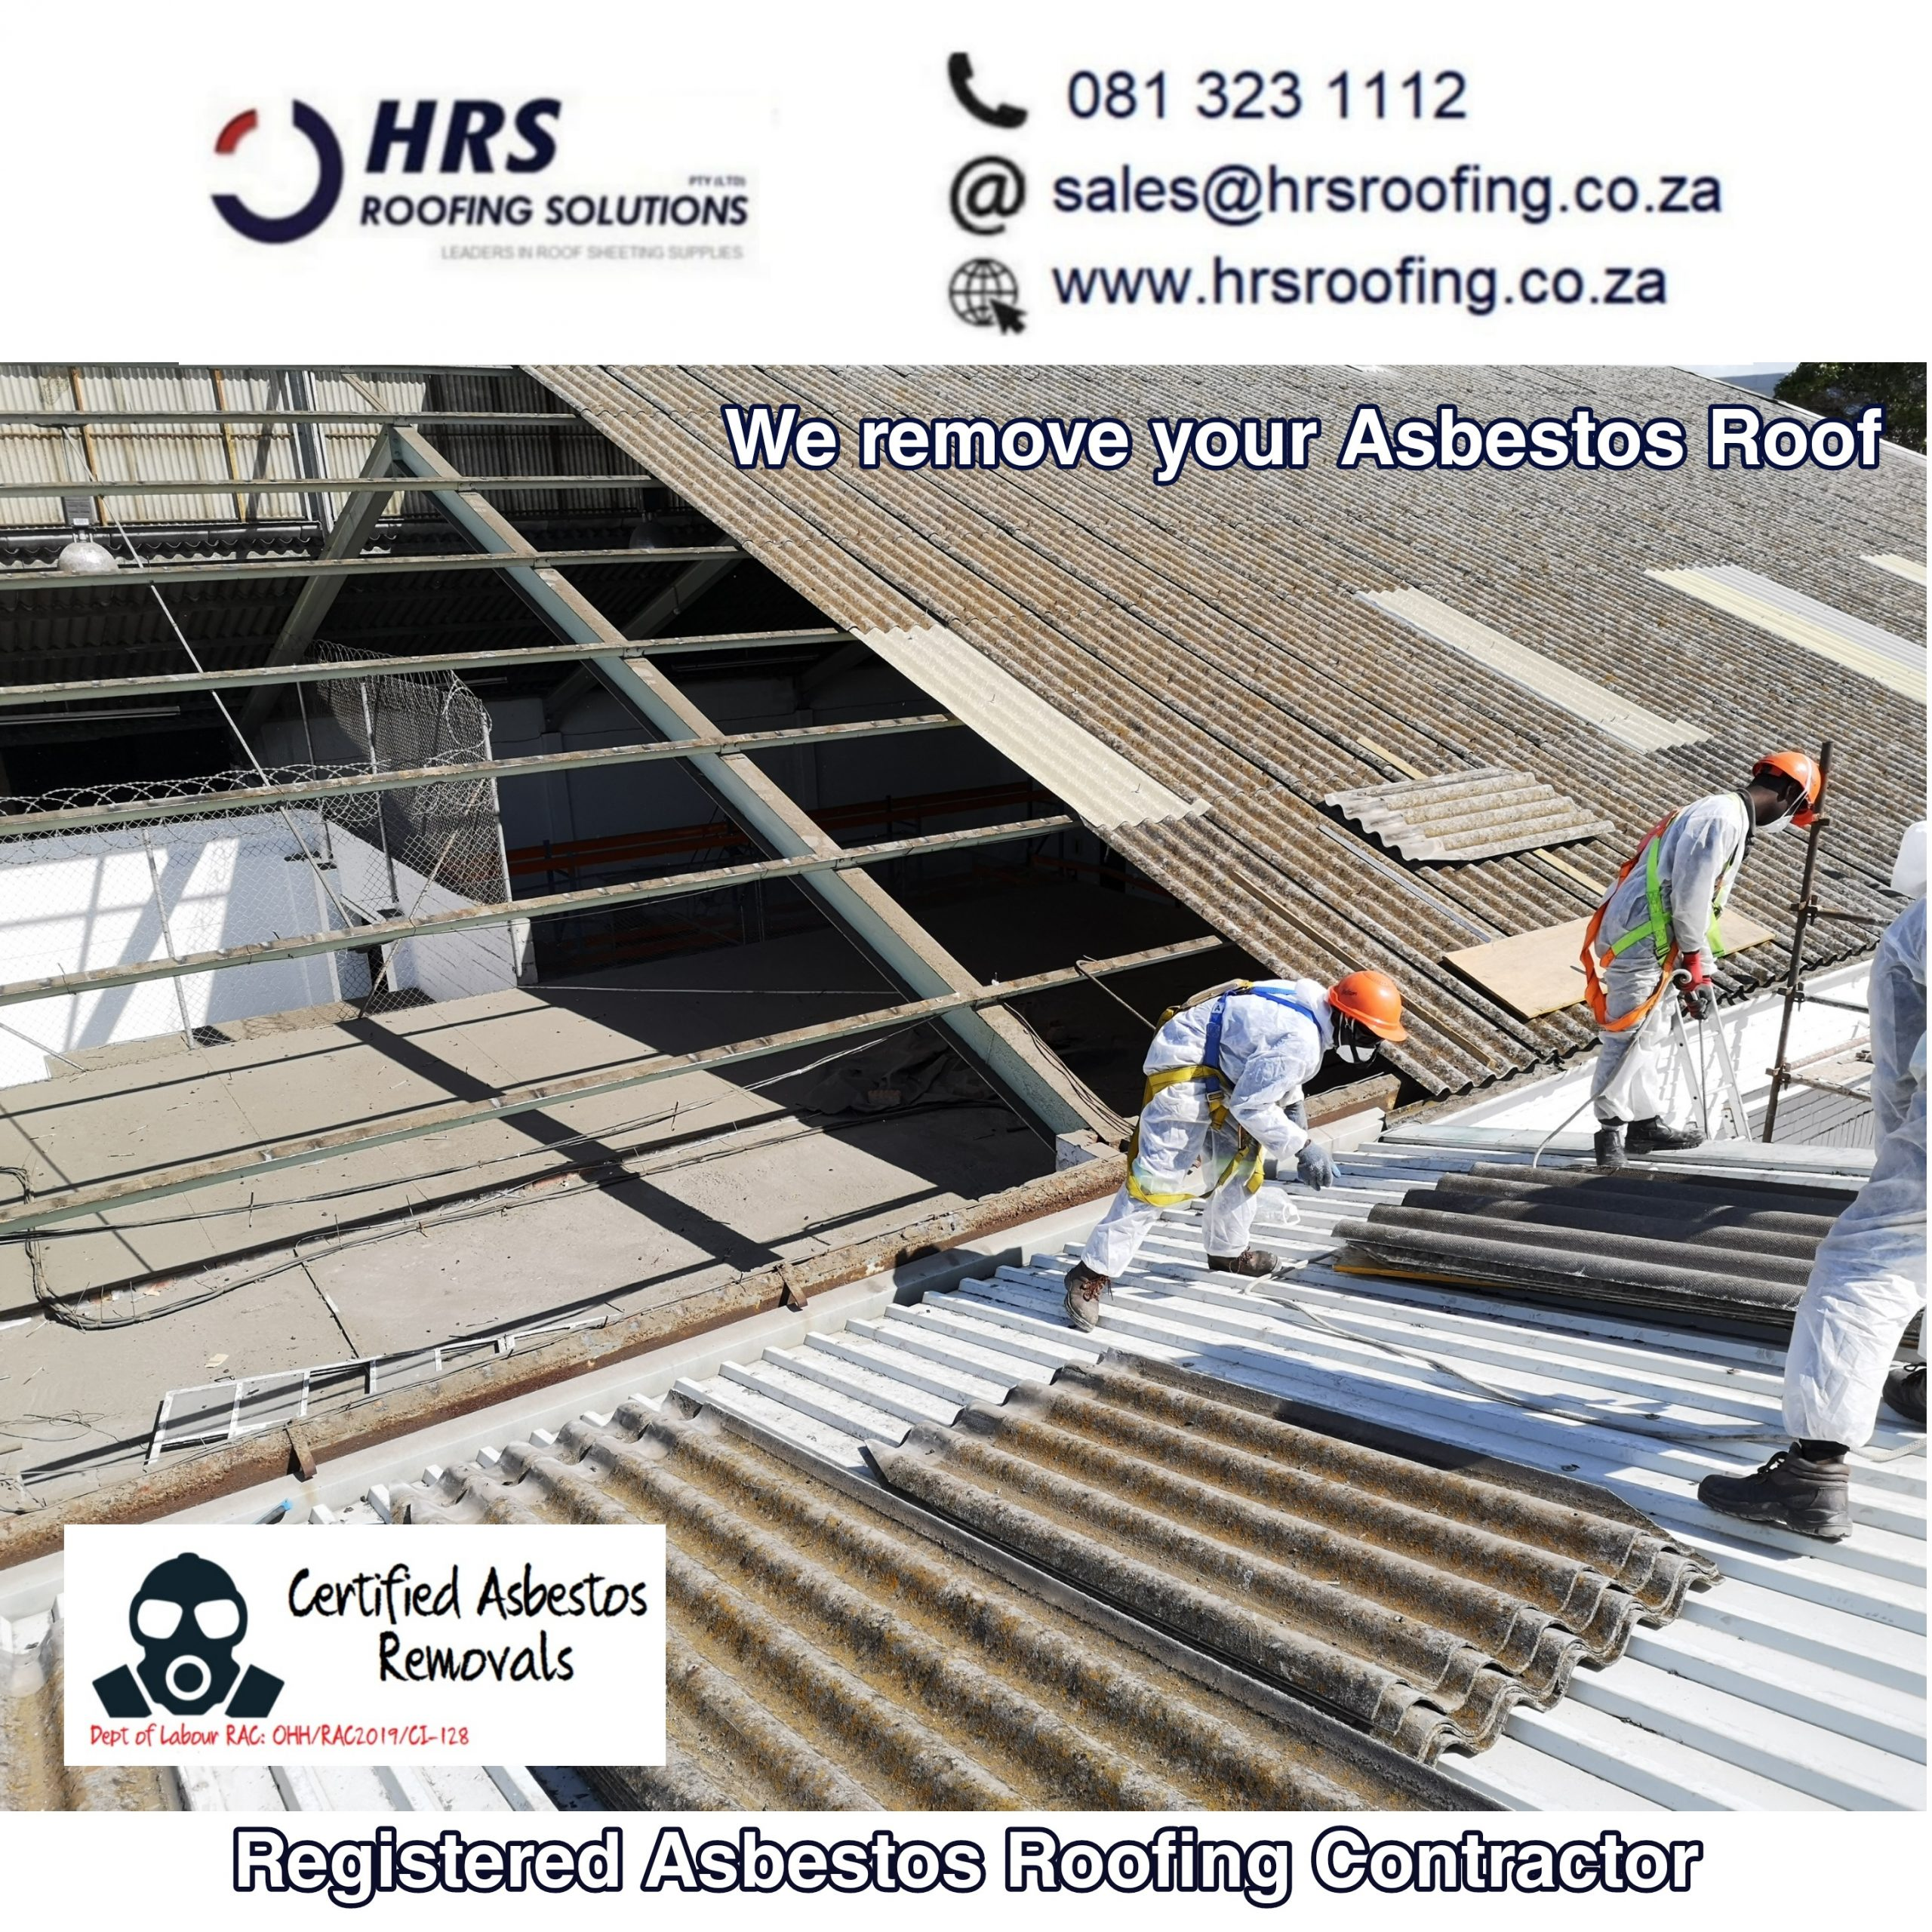 registered Asbestos Contractor hrs roofing solutions cape Town2 scaled - Roofing Gallery